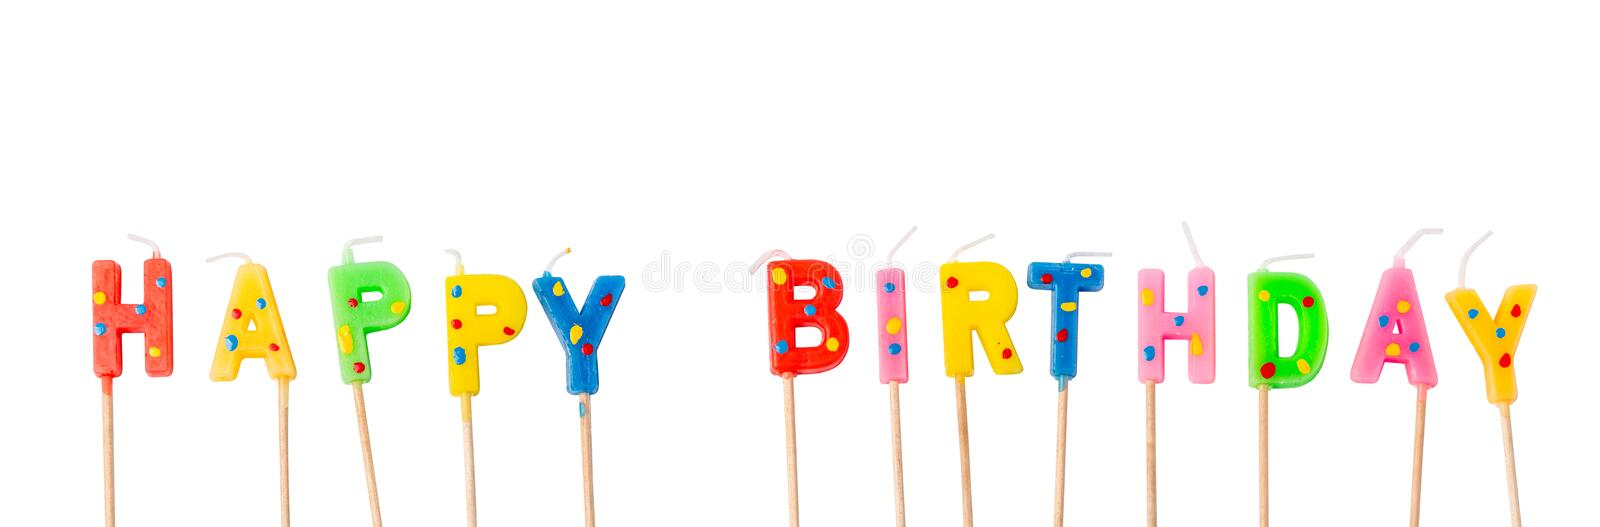 Colorful candles in letters saying Happy Birthday, royalty free stock photography